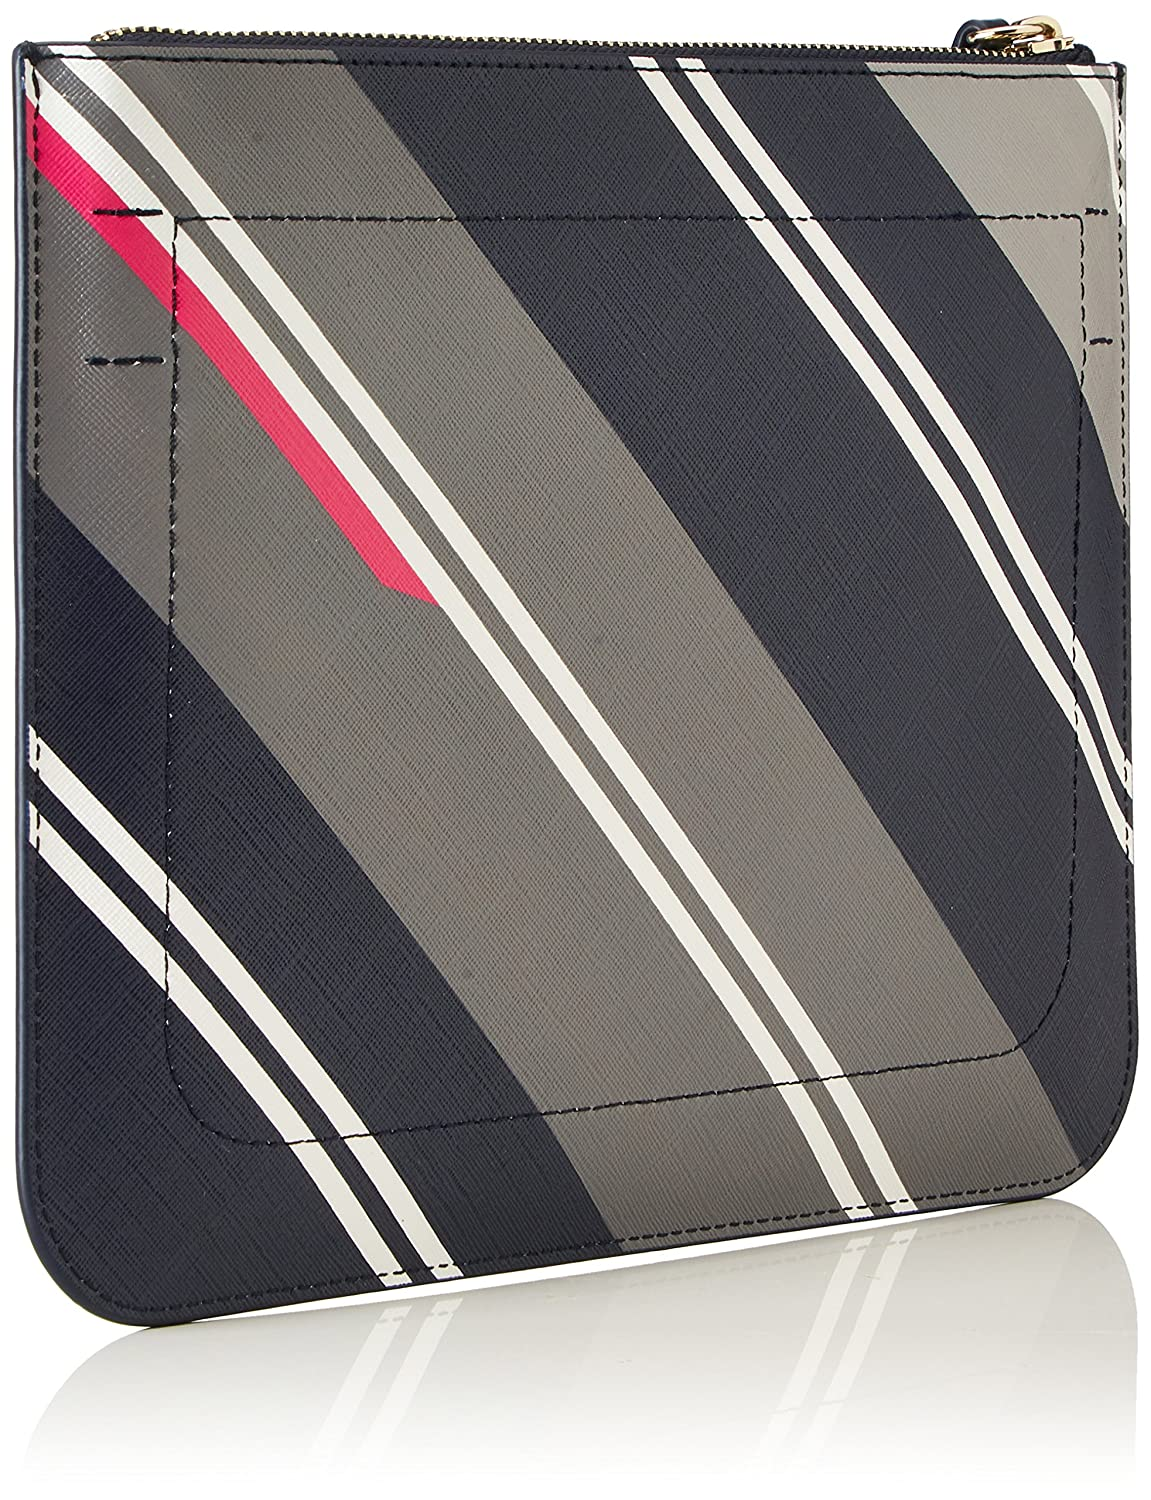 Love Crossover Print, Womens Cross-Body Bag, Grau (Hella Stripes/navy), 2.5x20.5x25.5 cm (B x H T) Tommy Hilfiger